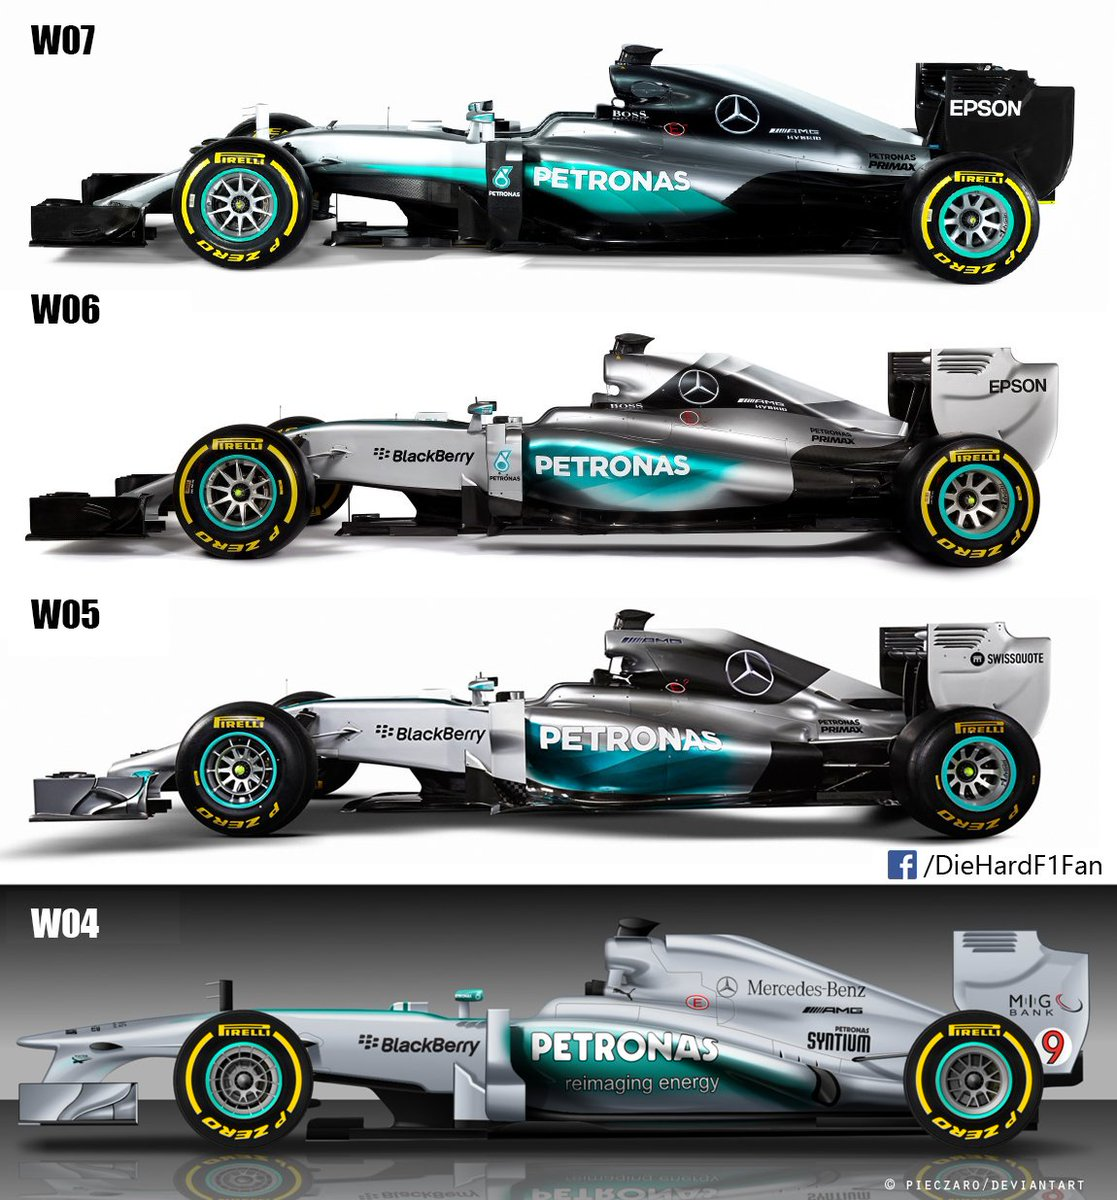 #F1 #F1 Side By Side Comparison : @MercedesAMGF1 W04 v/s W05 v/s W06 v/s W07 https://t.co/tRXQkacAvE